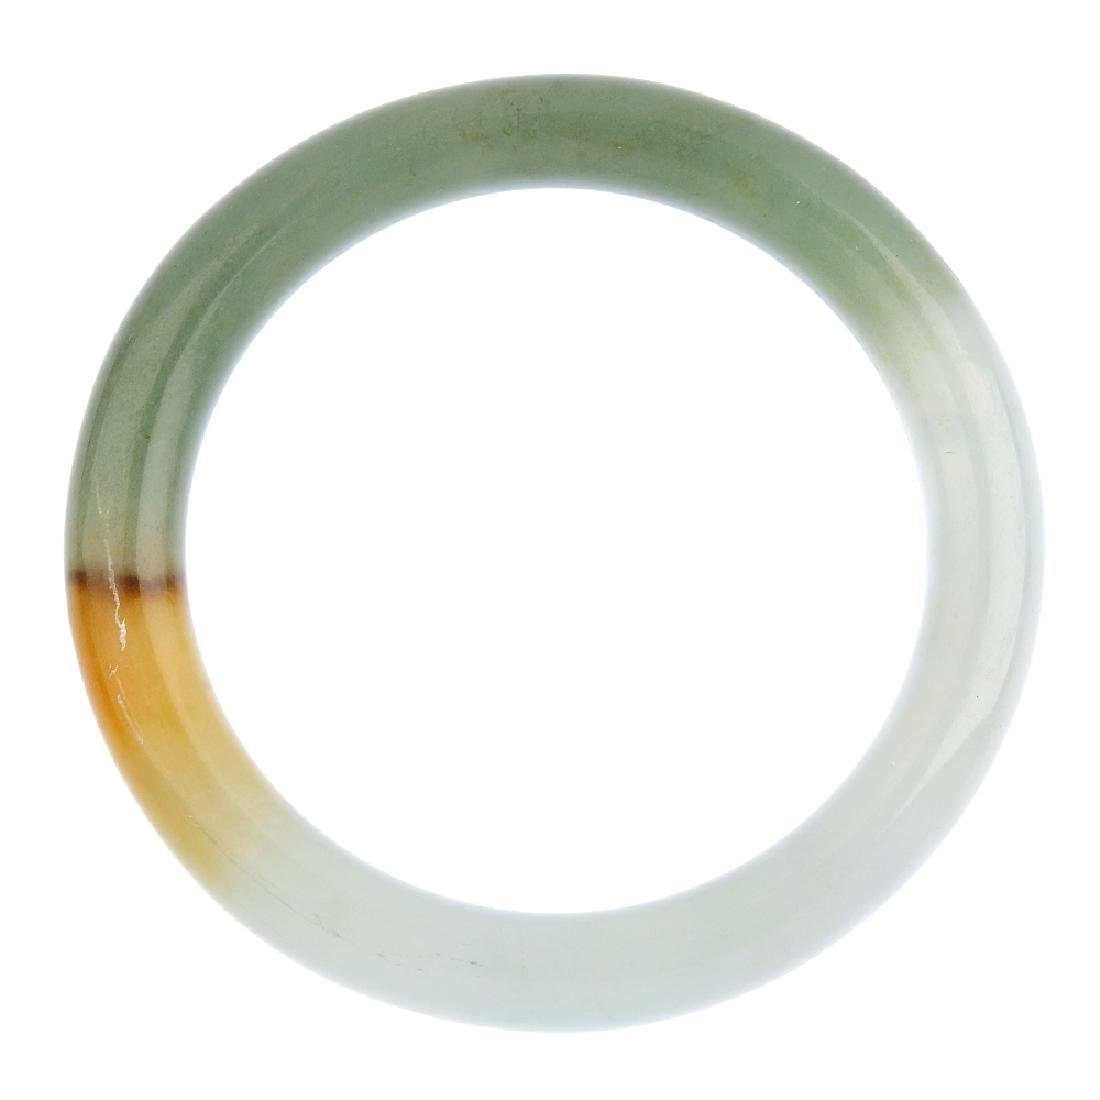 A jade bangle. Designed as a plain bangle, measuring